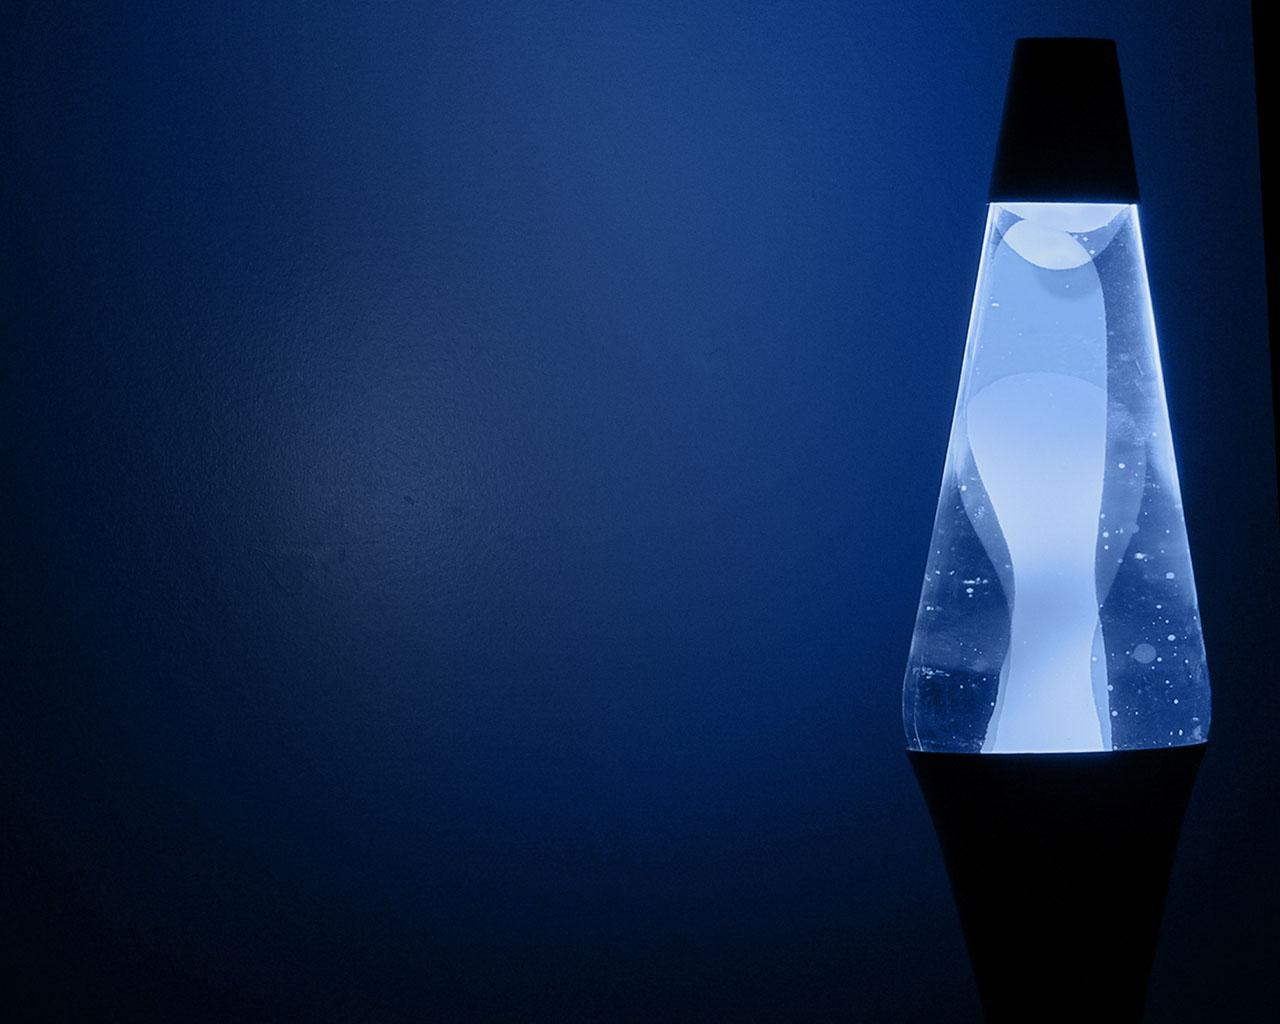 lavalamp lava Lamp preferably HD Wallpaper